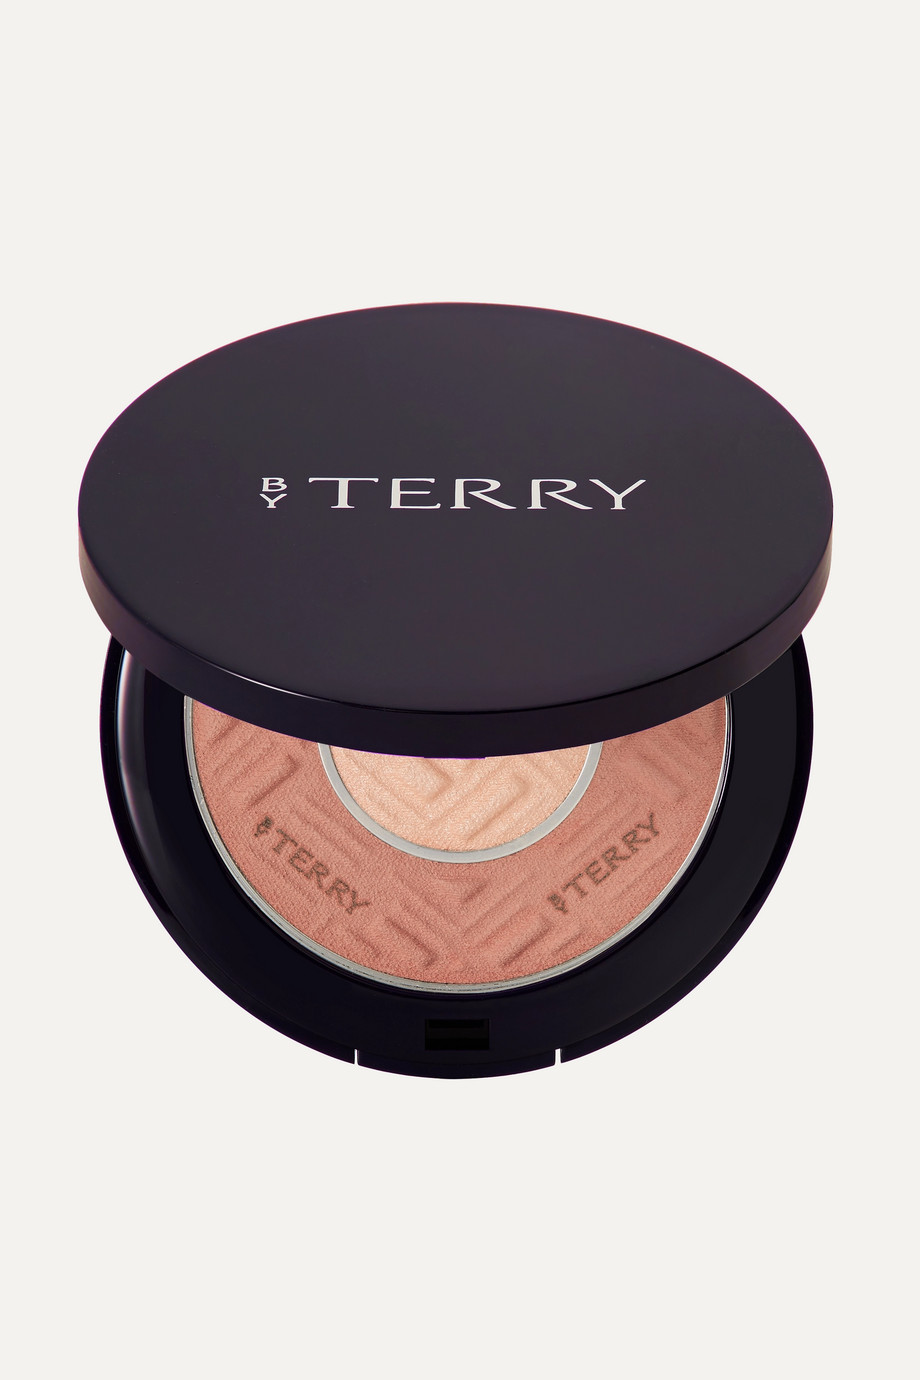 BY TERRY Compact Expert Dual Powder - Choco Vanilla No.6